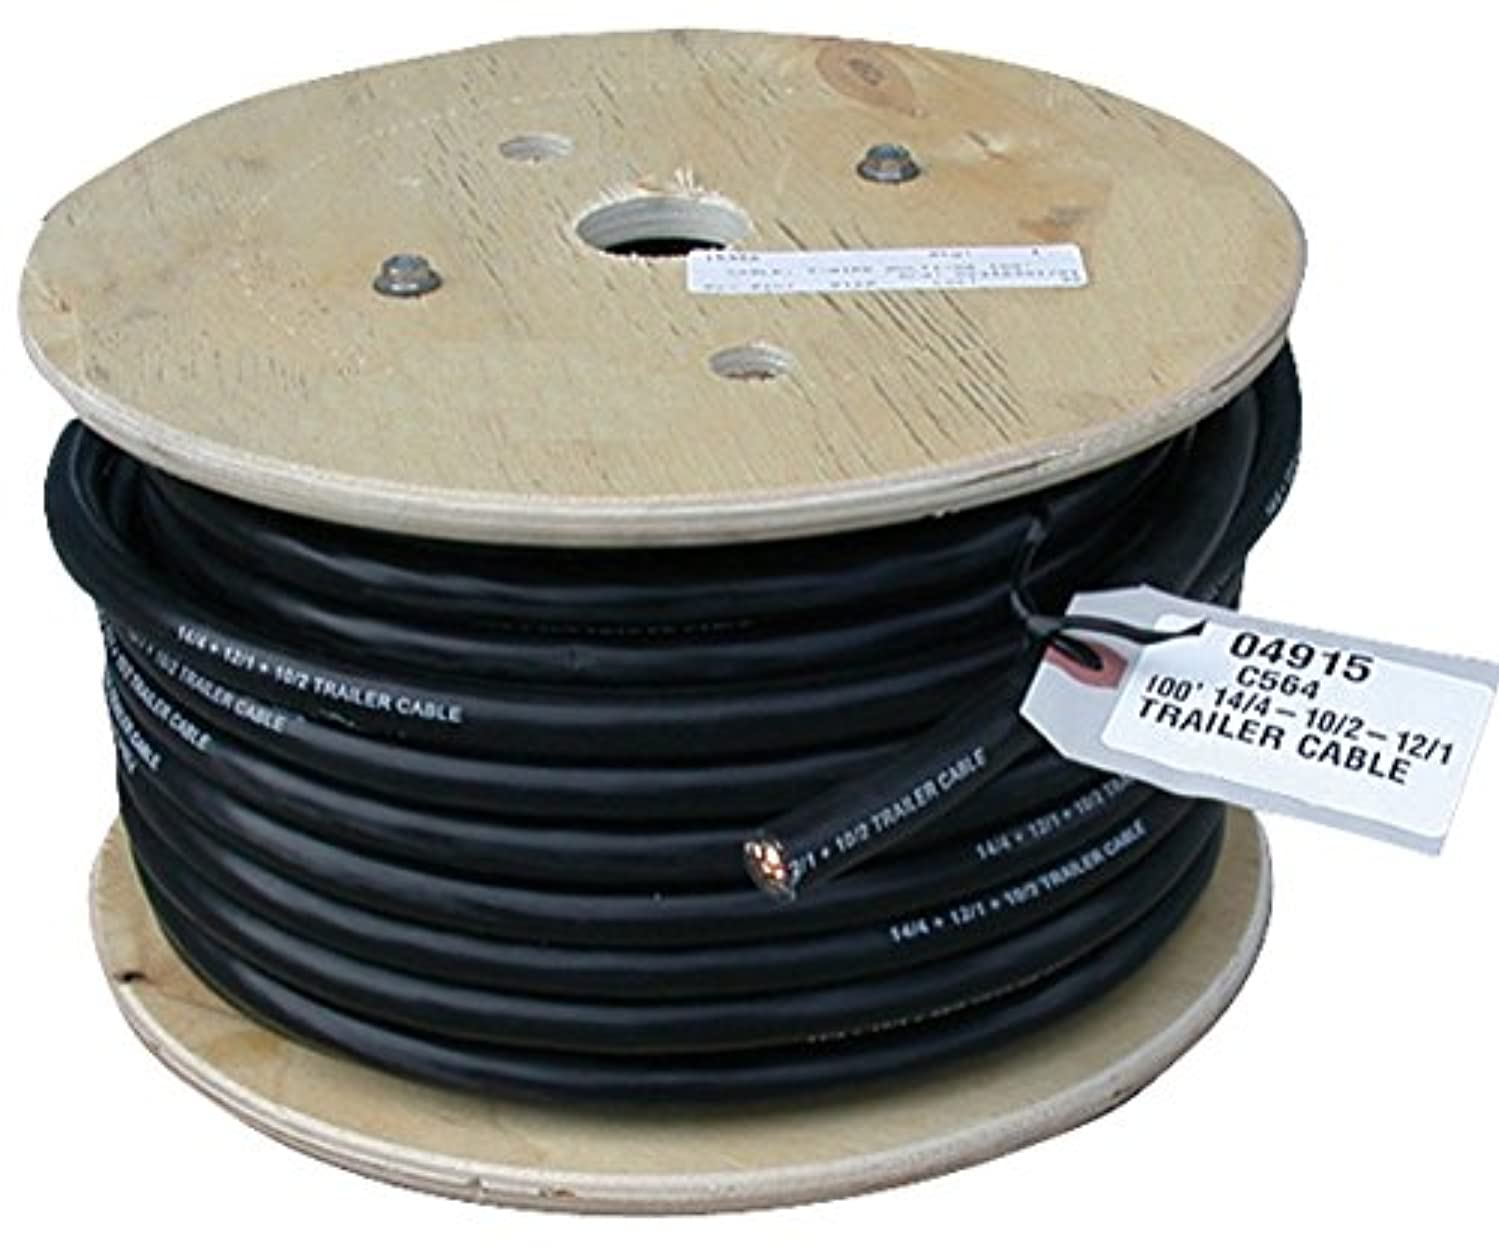 East Penn (04915 100' 7-Wire Multi-Gauge Cable